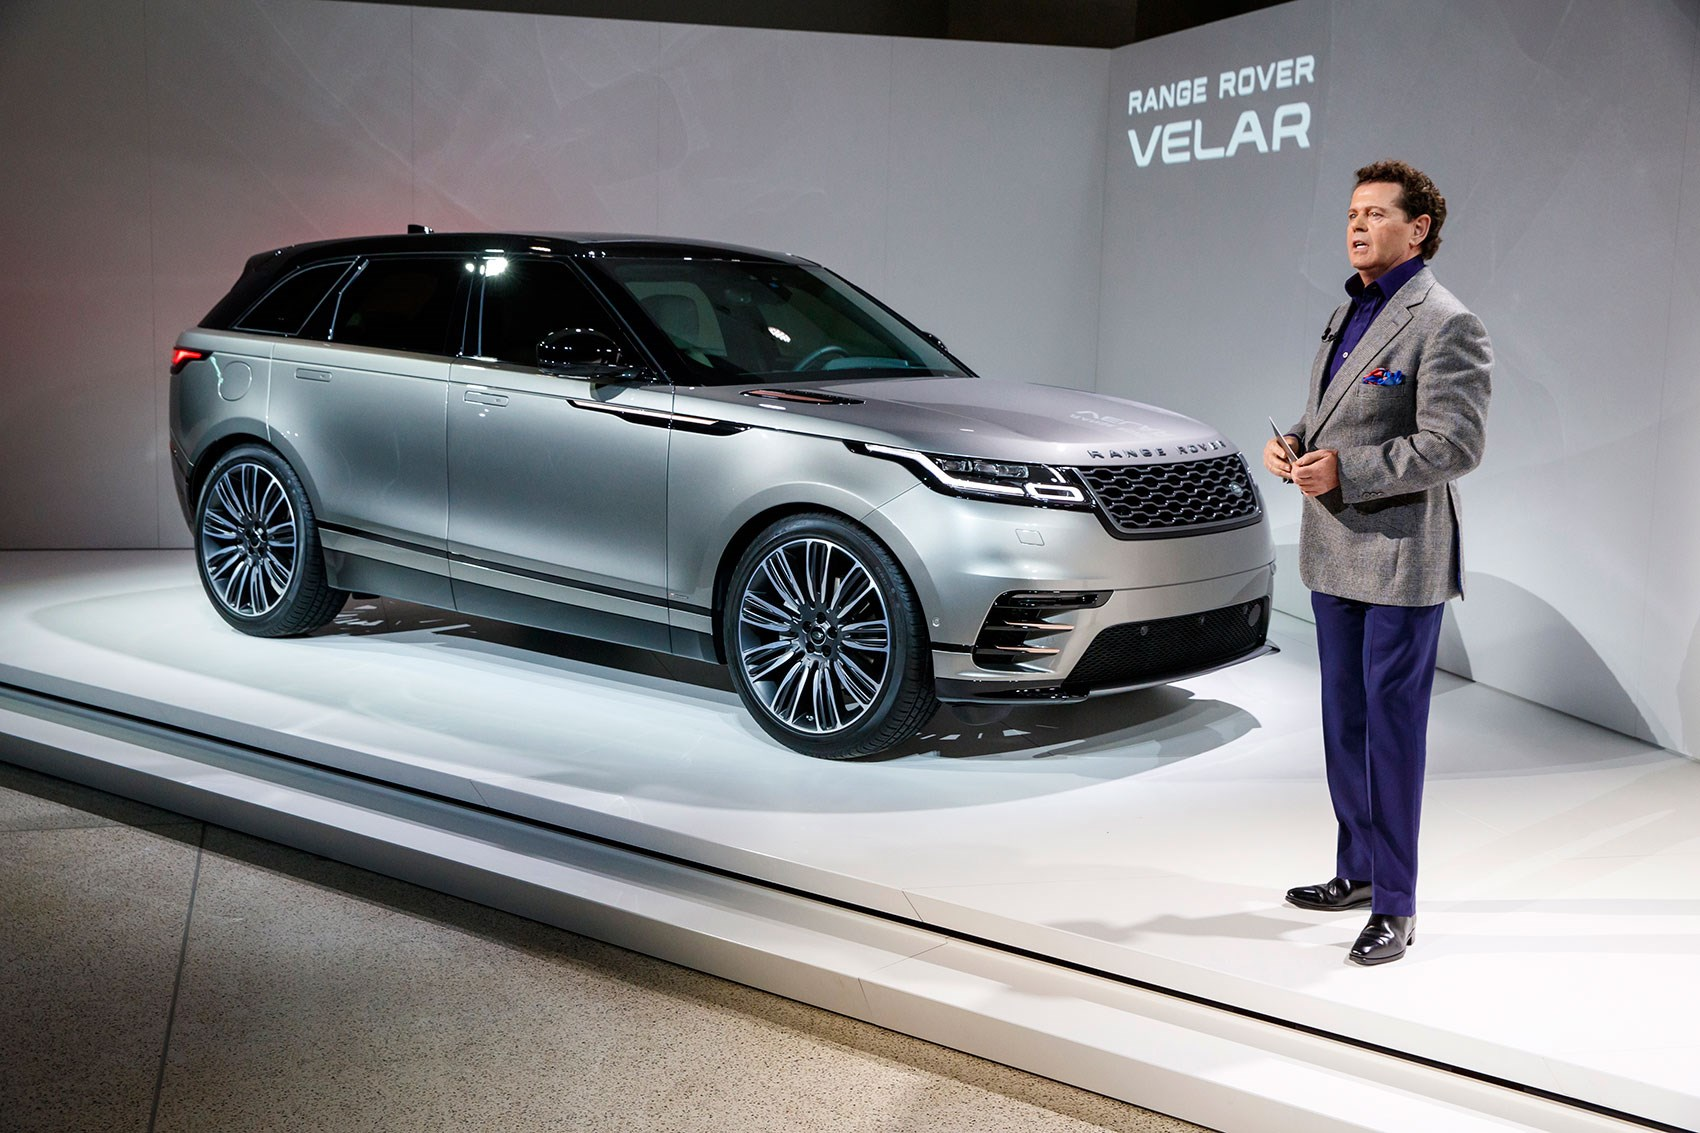 The Range Rover Velar At 2017 Geneva Motor Show Unveiled By Design Chief Gerry Mcgovern